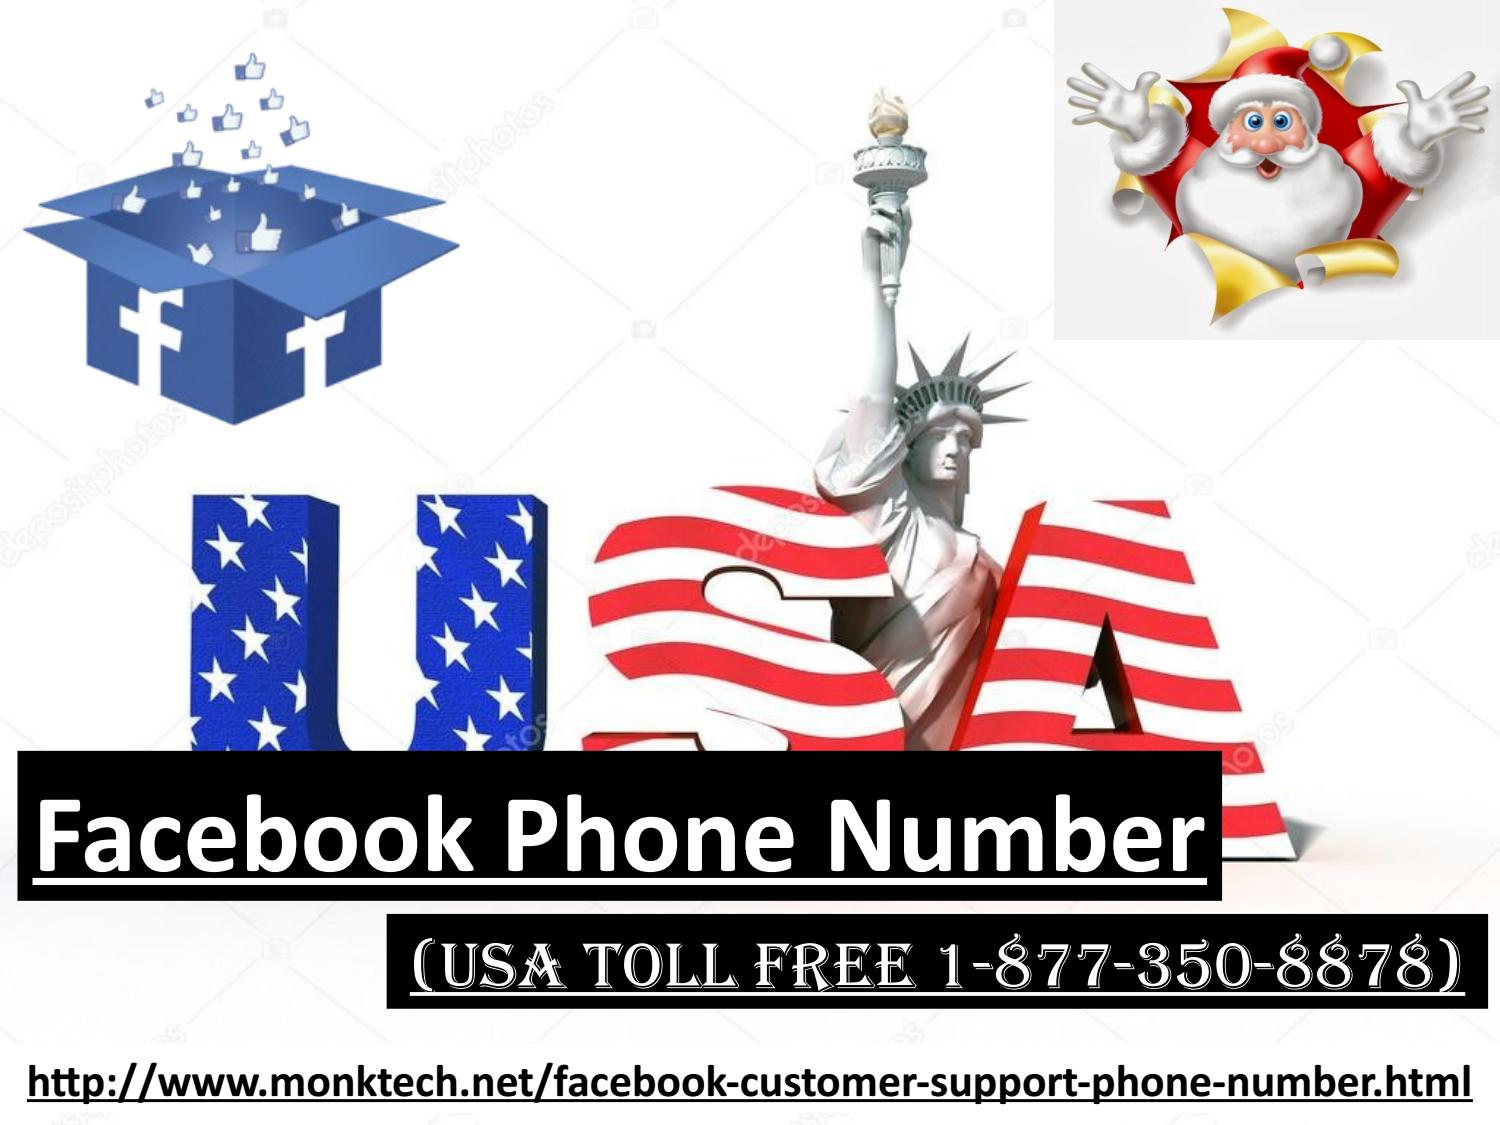 How to rotate FB photos? Call at Facebook Phone Number 1-877